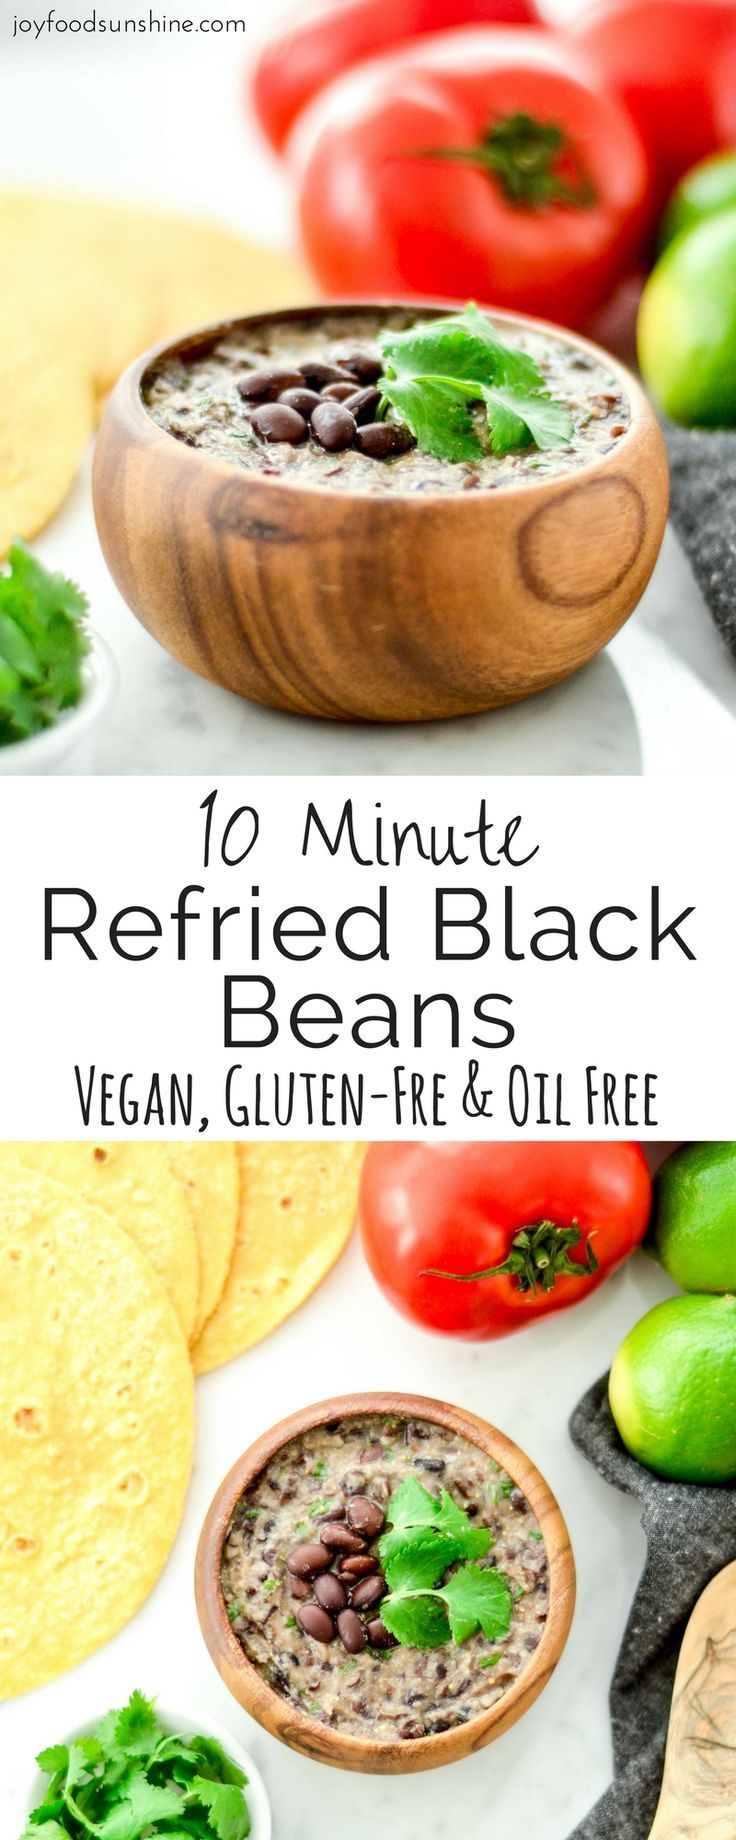 Best 25+ Vegan refried beans ideas on Pinterest | Mexican ...